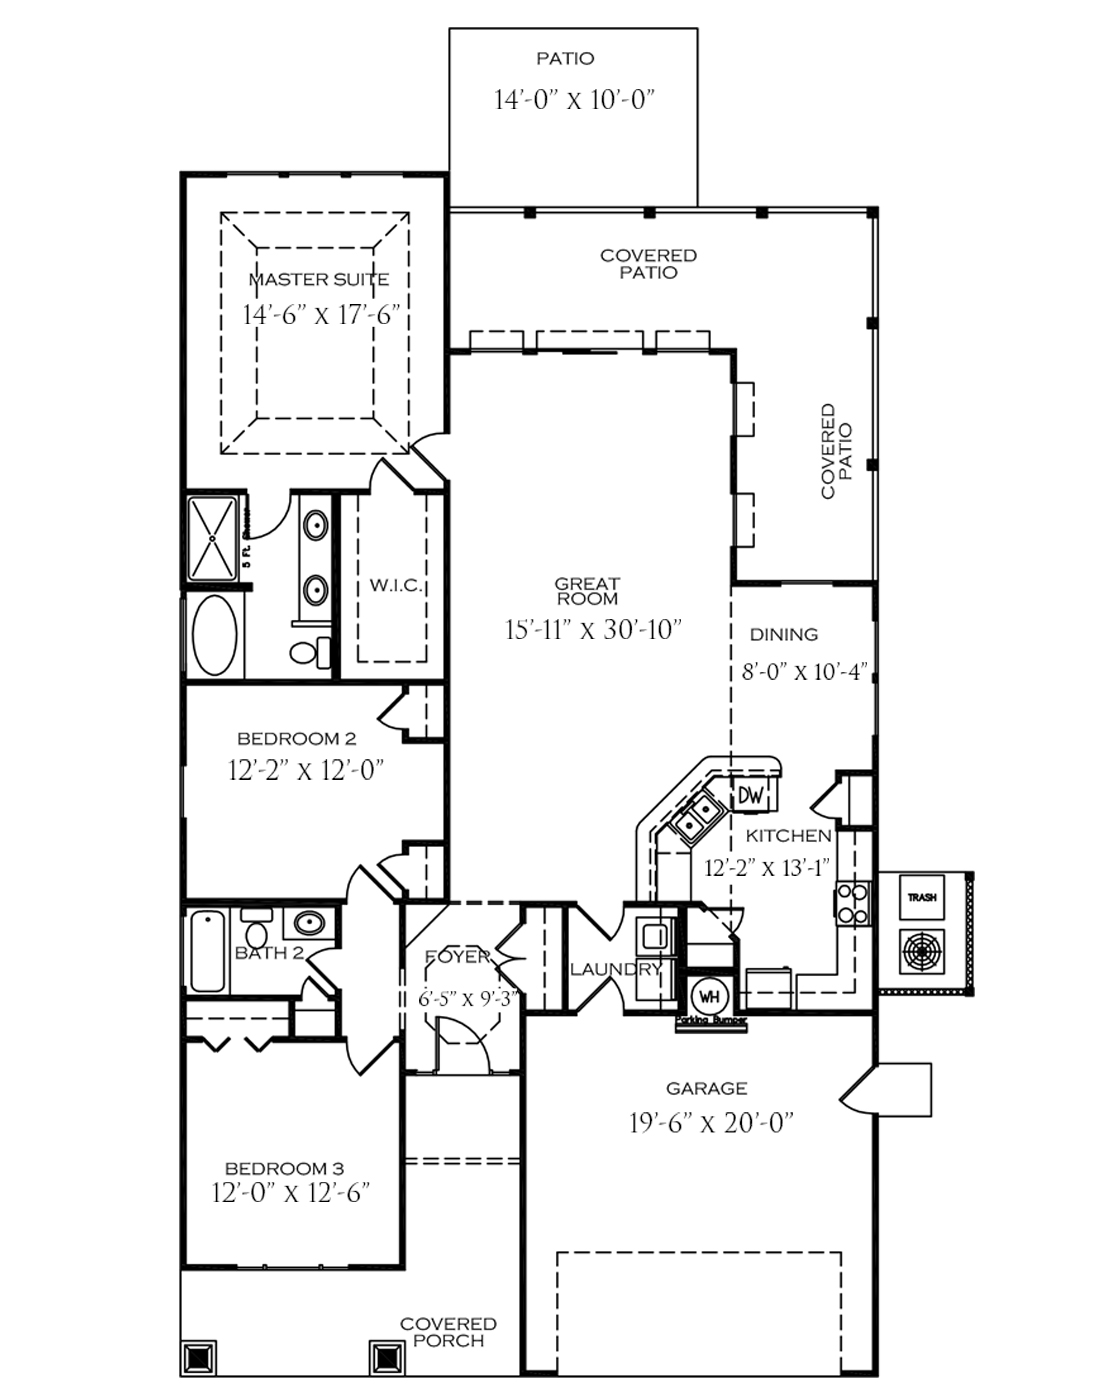 The floor plan of The Folly house layout at Stone Gate Prince Creek